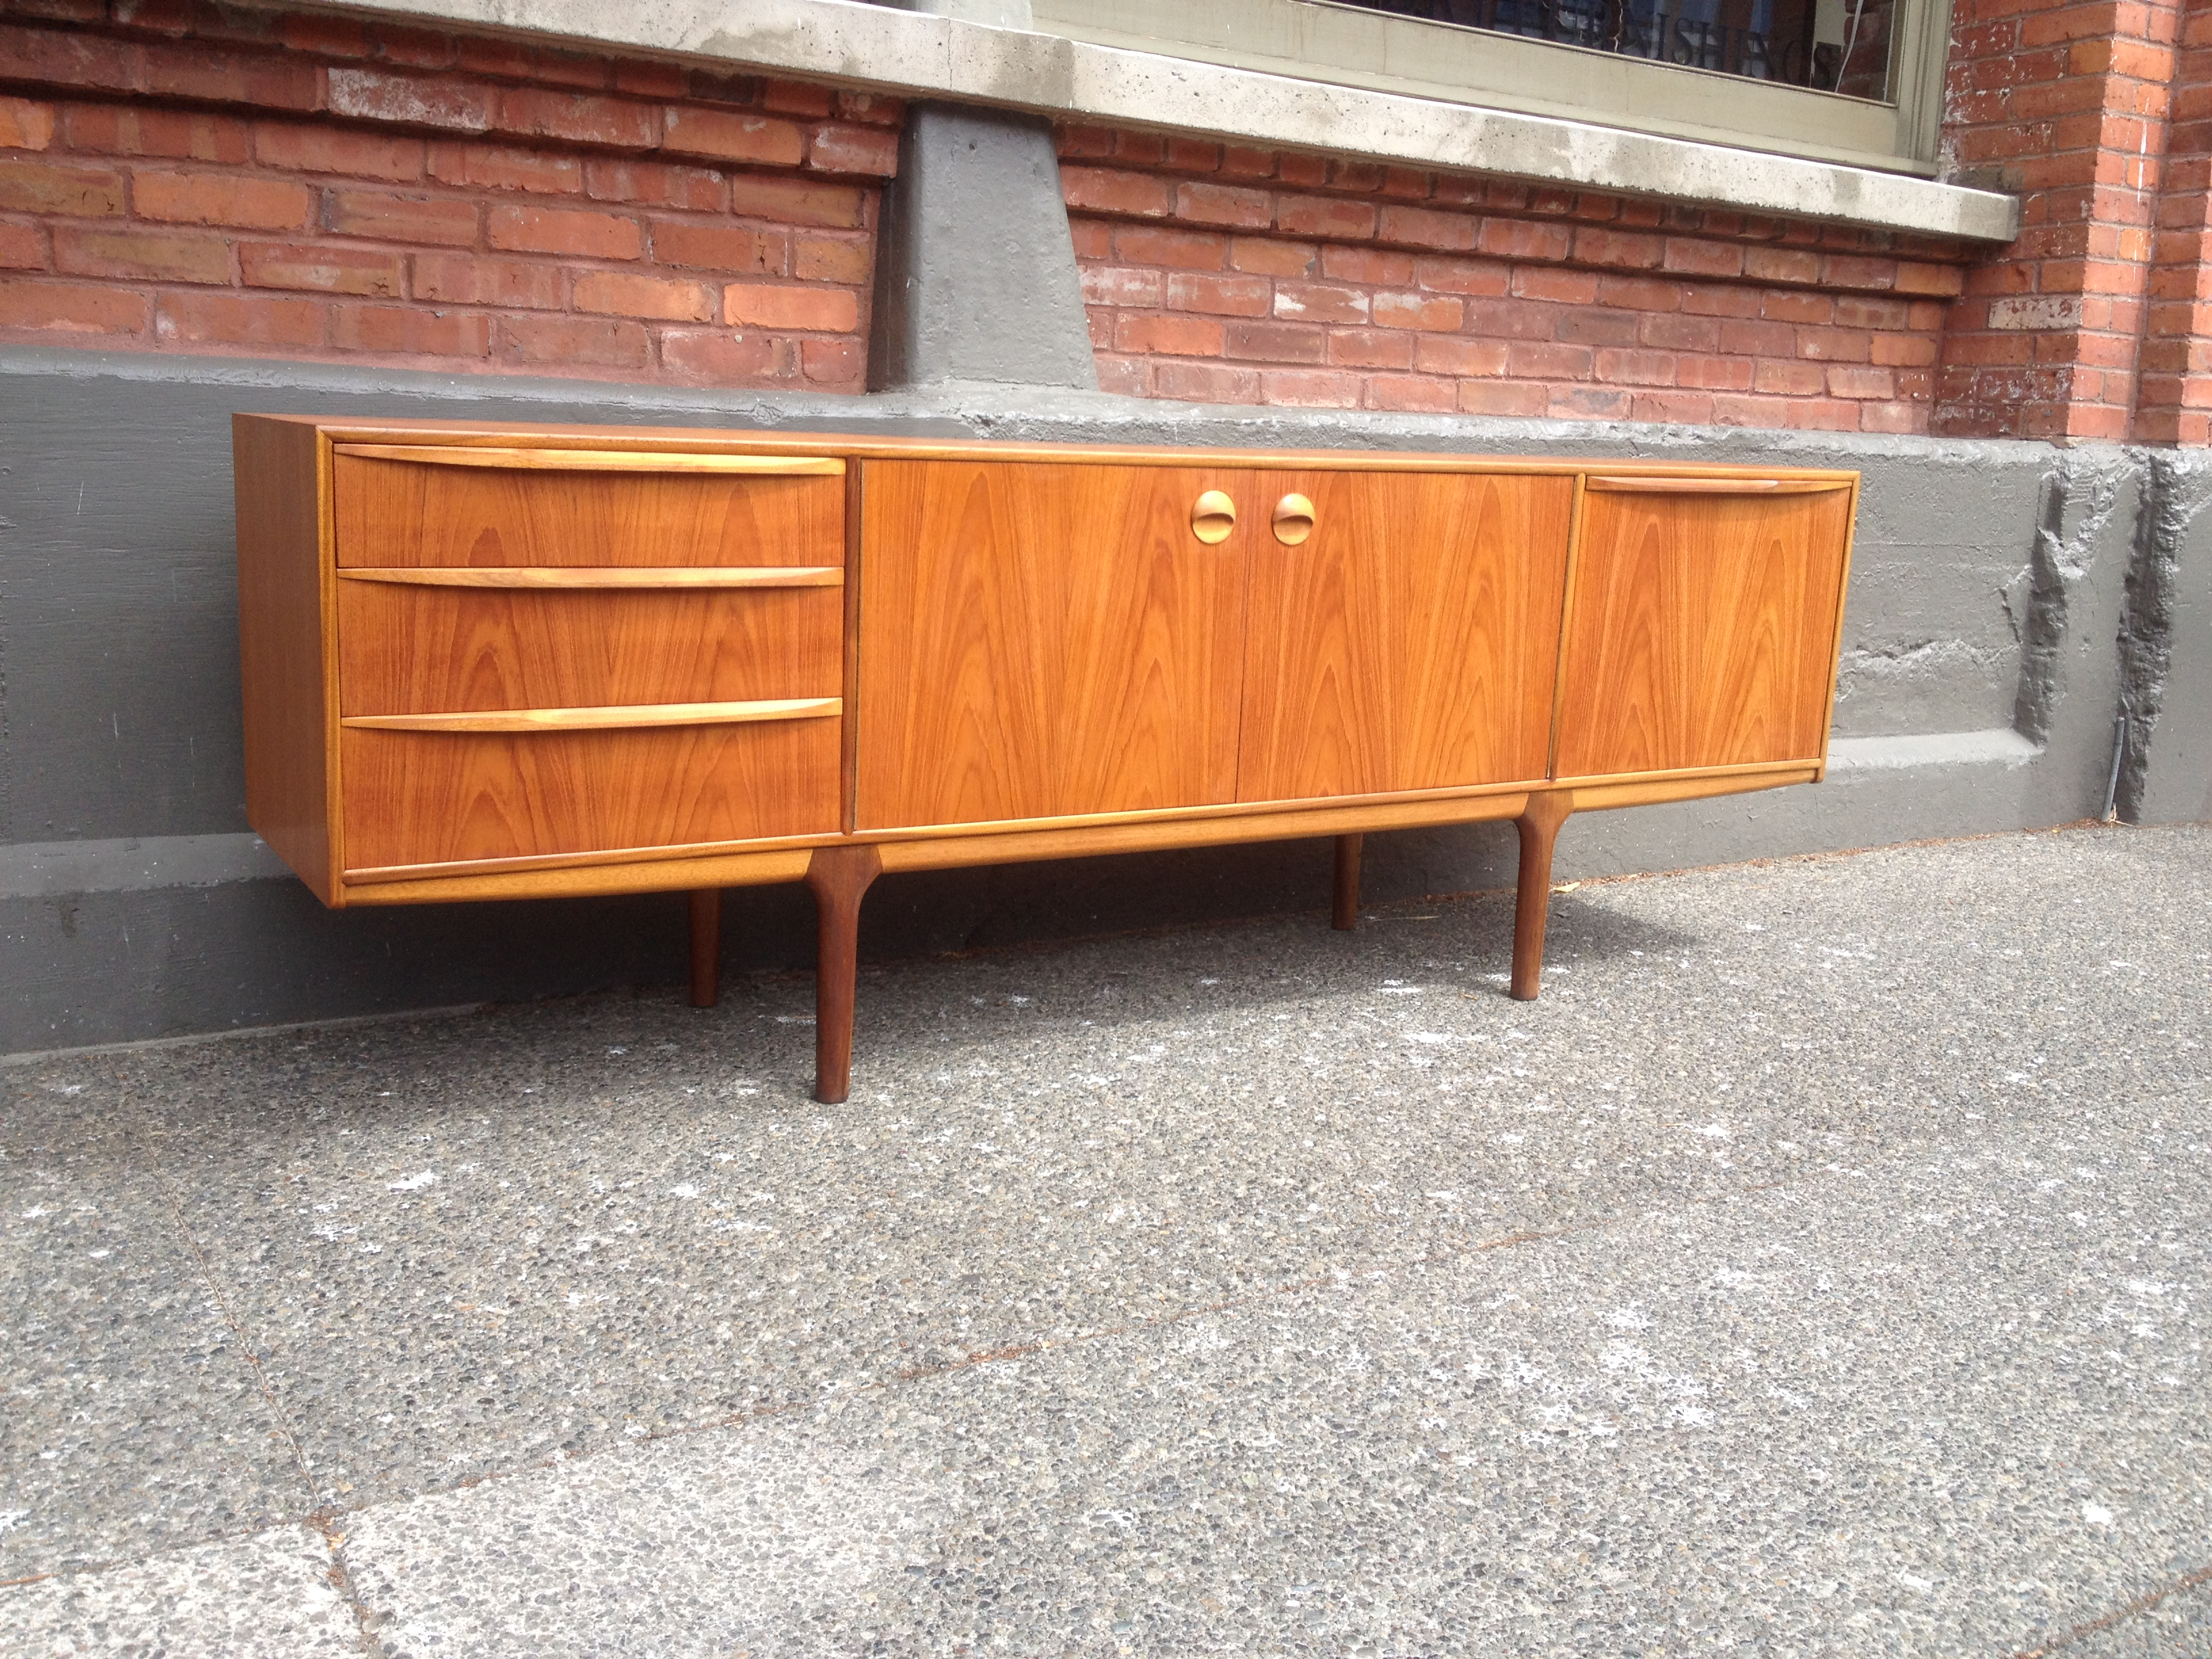 Exceptional Mid century Modern 2 tone teak sideboard with many amazing  features   lets start. The Fabulous Find   Mid Century Modern Furniture Showroom in